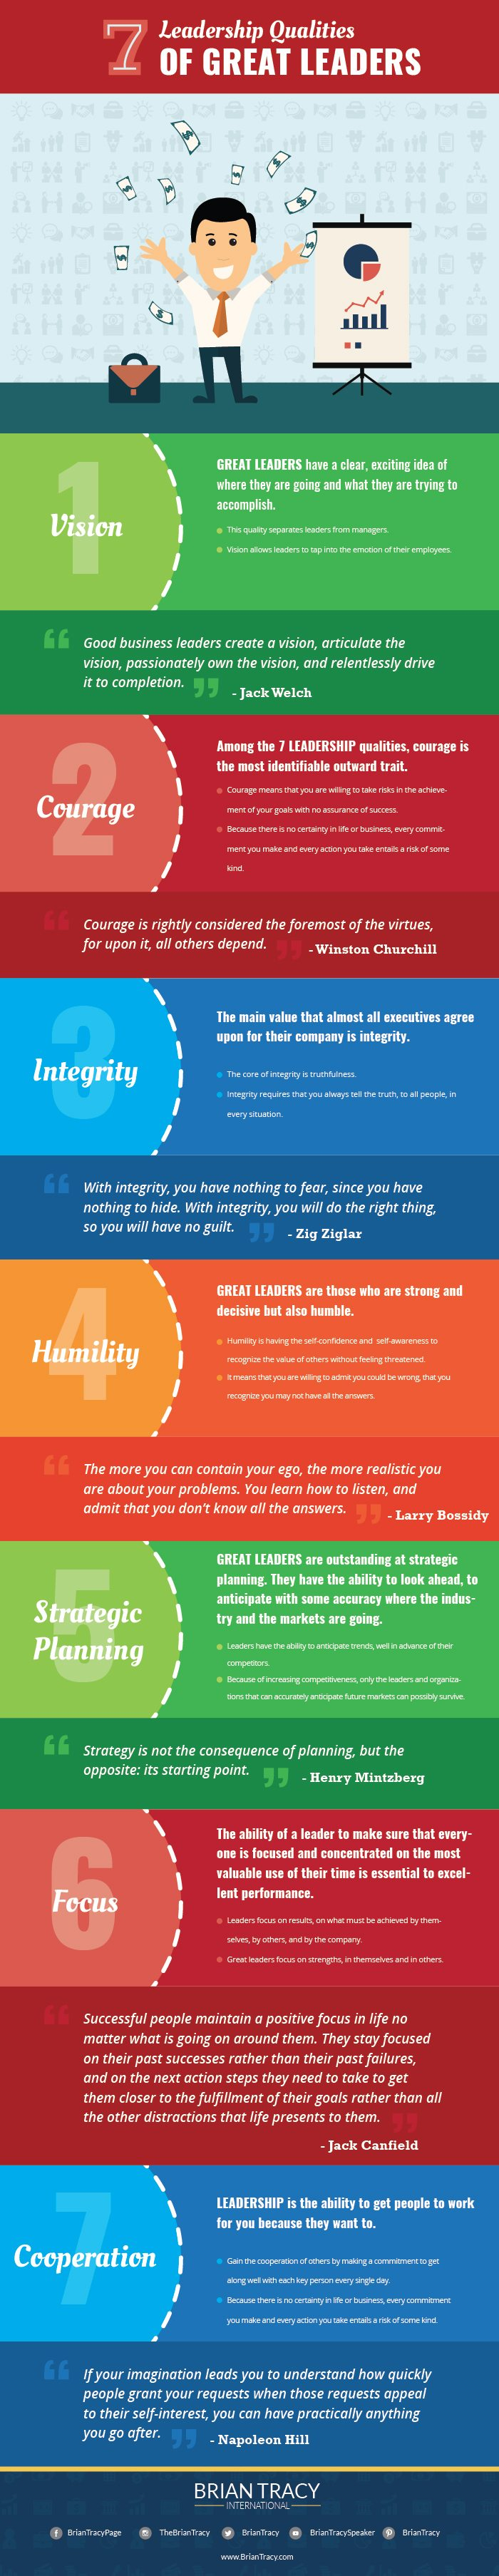 leadership-qualities-infographic-brian-tracy